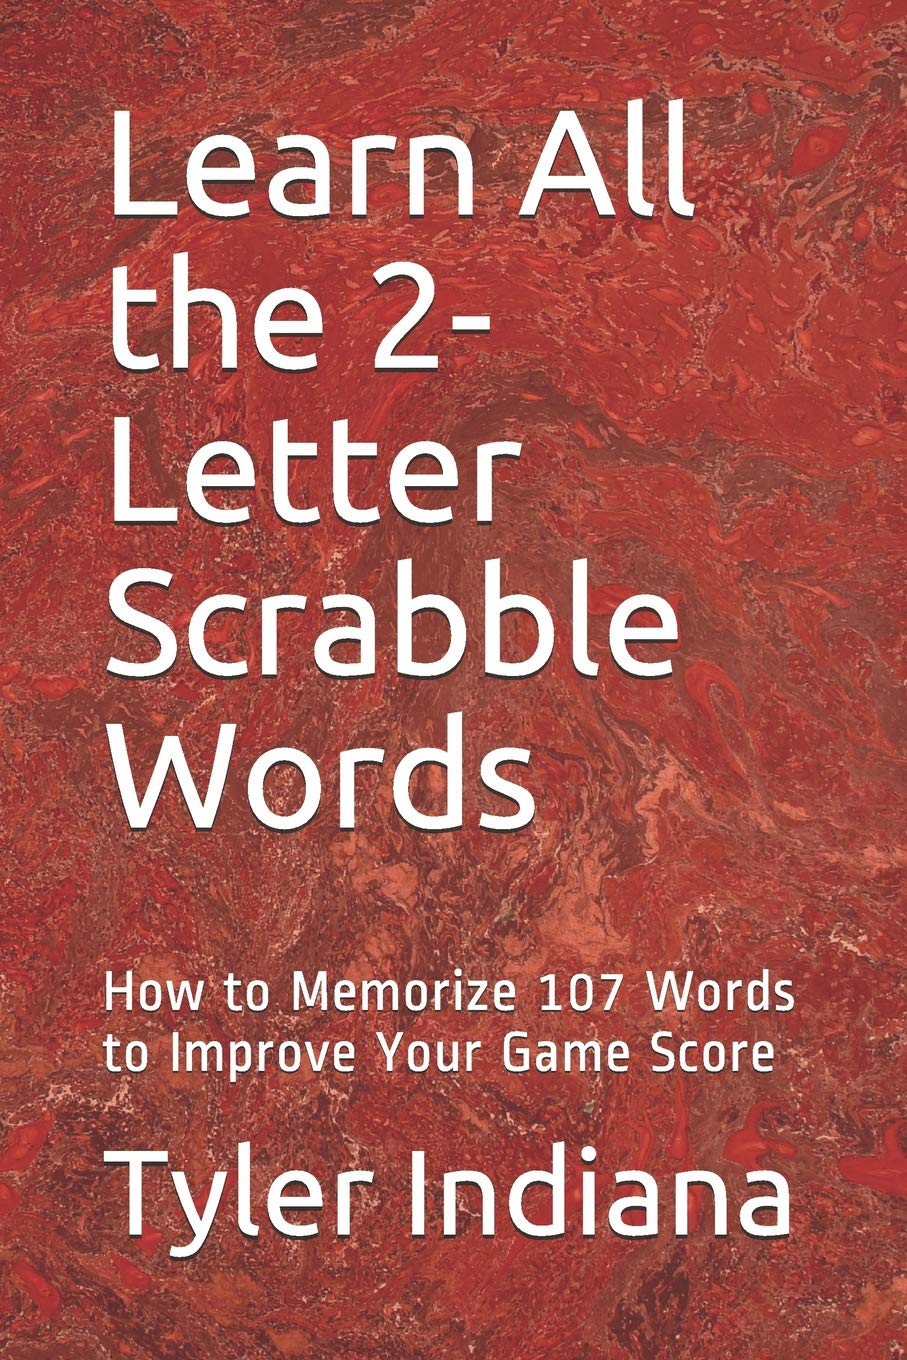 Amazon Com Learn All The 2 Letter Scrabble Words How To Memorize 107 Words To Improve Your Game Score 9781093183276 Indiana Tyler Debusk Tyler Books